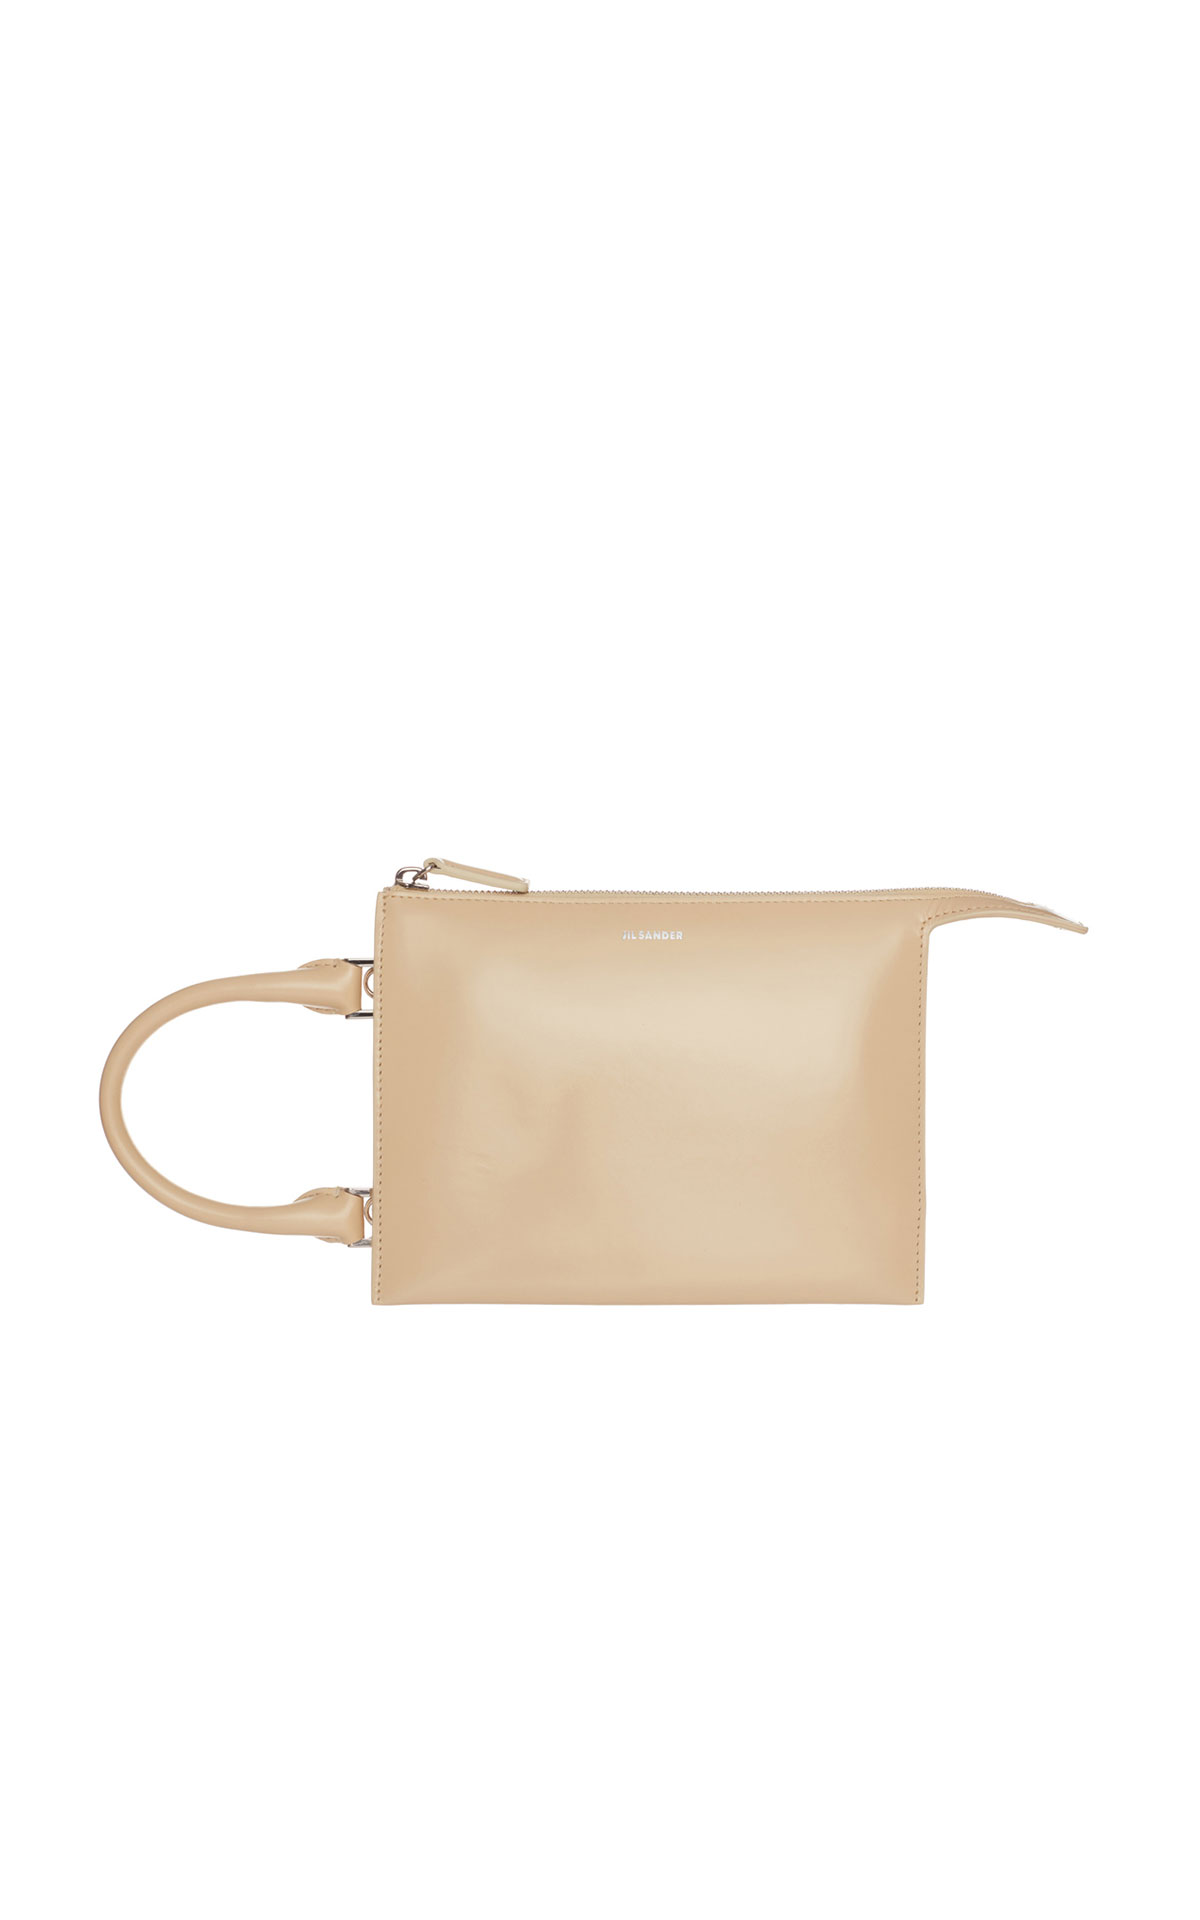 Jil Sander Tootie mini bag in egg from Bicester Village